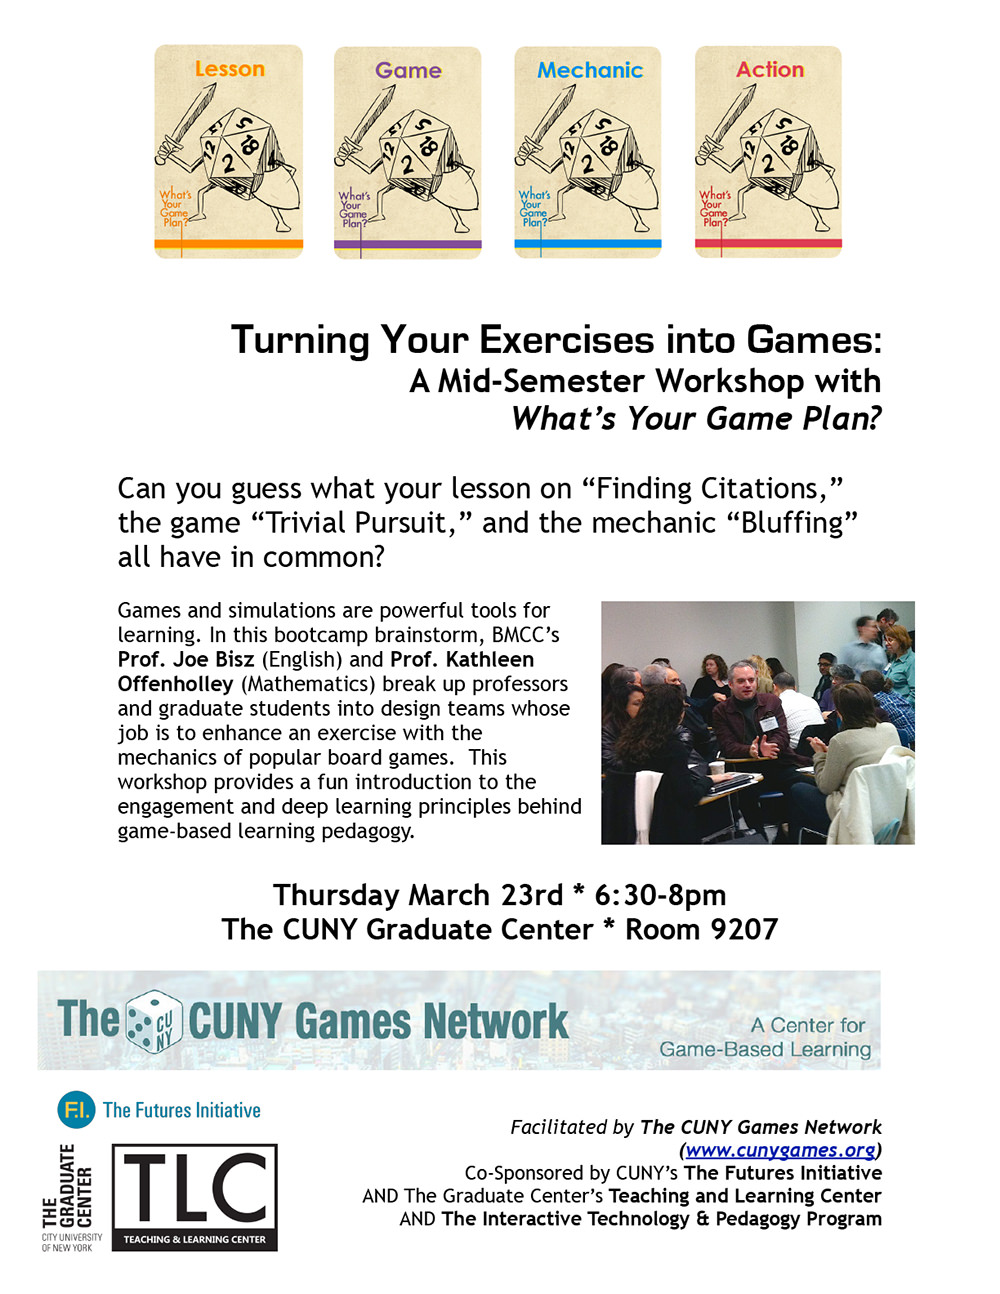 Turning Your Exercises into Games:<br>A Mid-Semester Workshop with What's Your Game Plan? 2